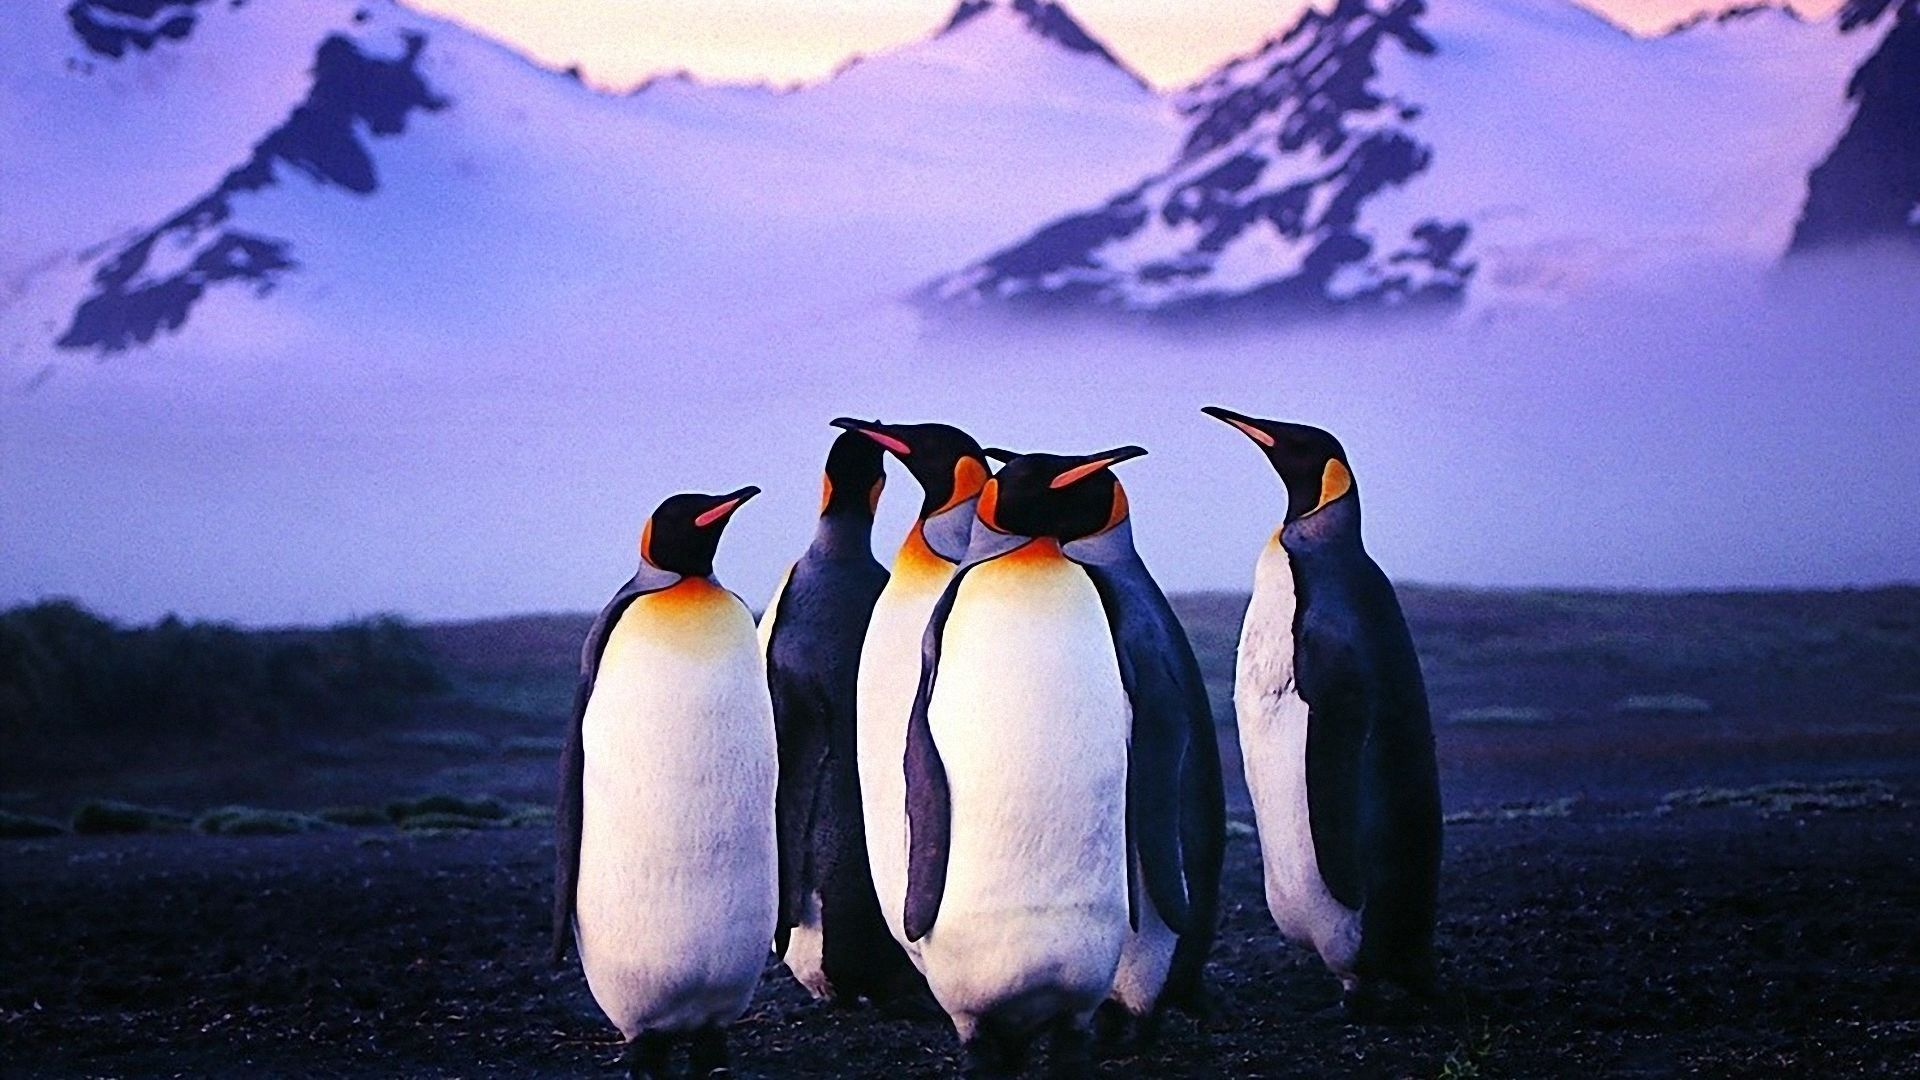 Penguin Wallpapers 43 Best Free Penguin Images For Mac in